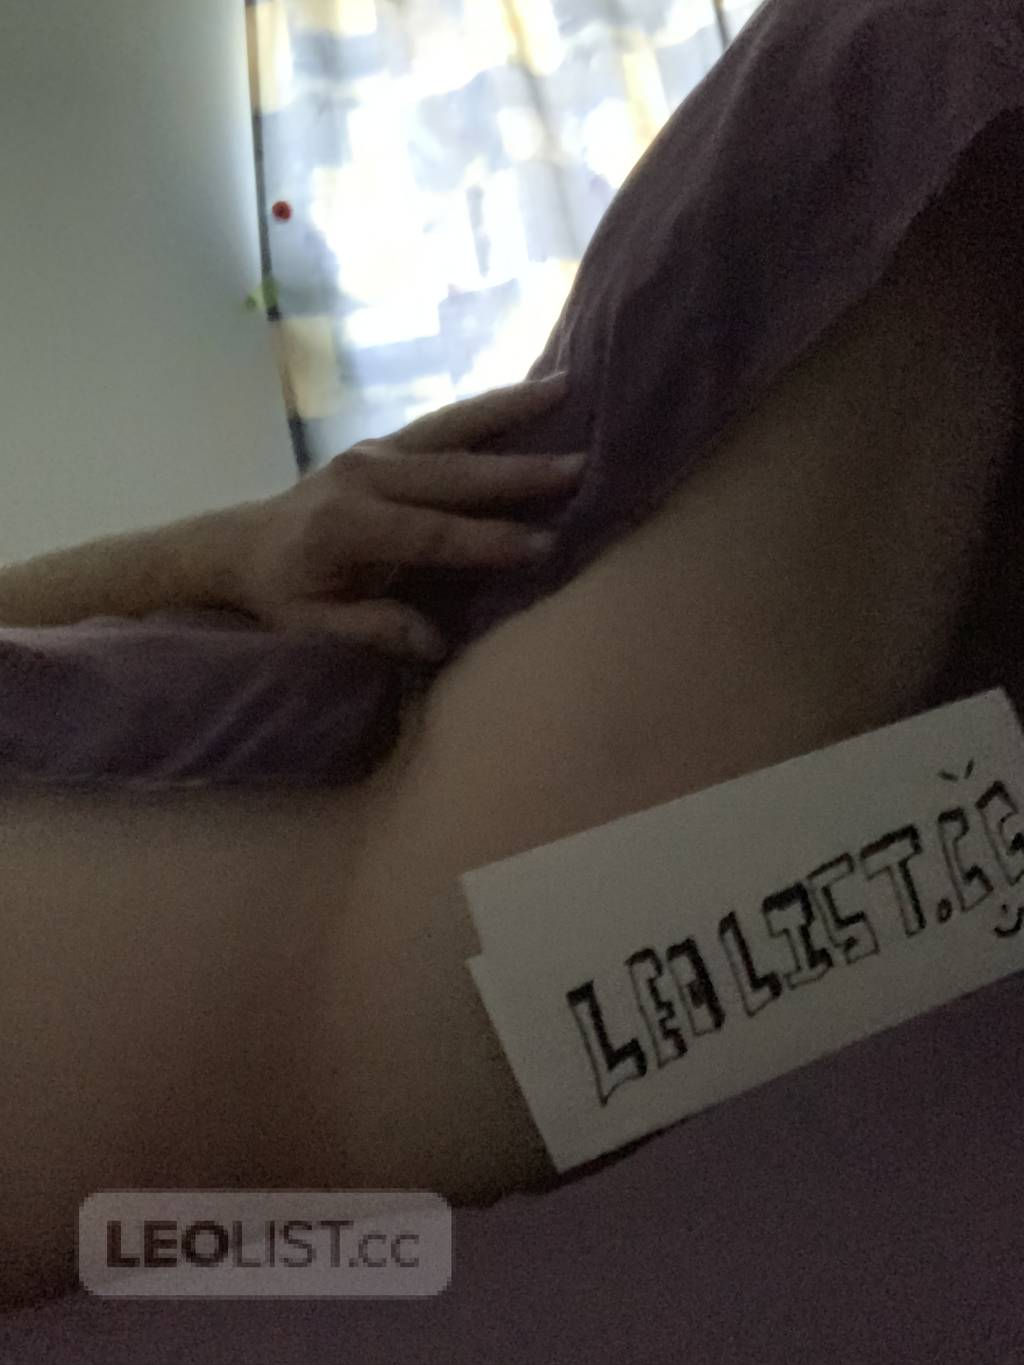 looking for a top/vers guy